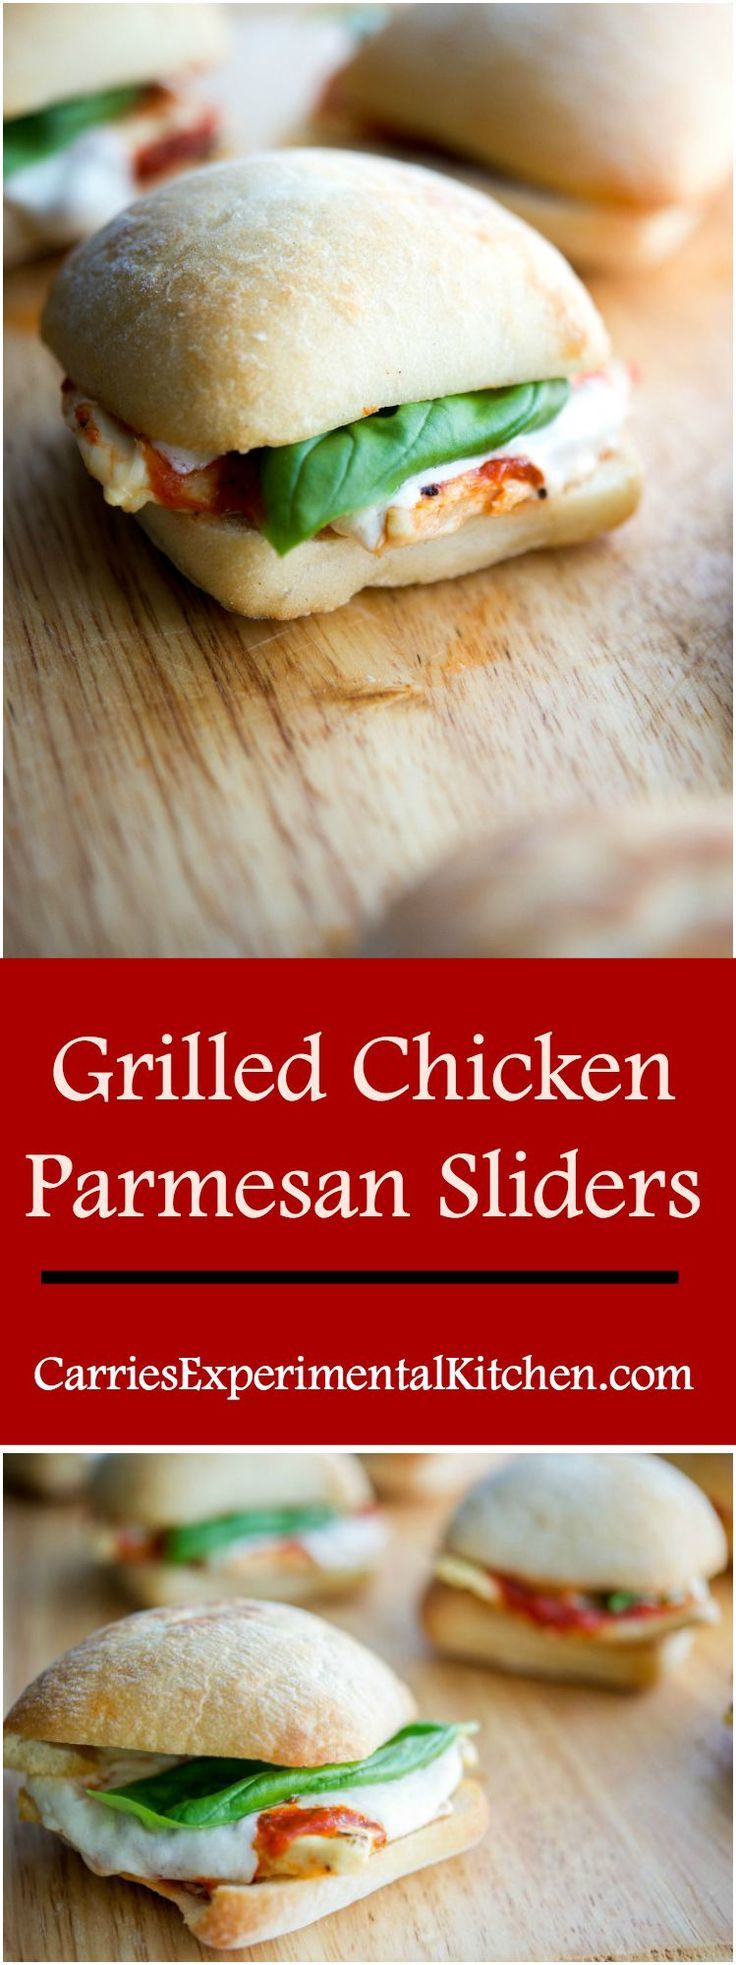 Grilled Chicken Parmesan Sliders | CarriesExperimentalKitchen.com  These Grilled Chicken Parmesan Sliders take only 20 minutes to make and are much healthier than the classic sandwich.